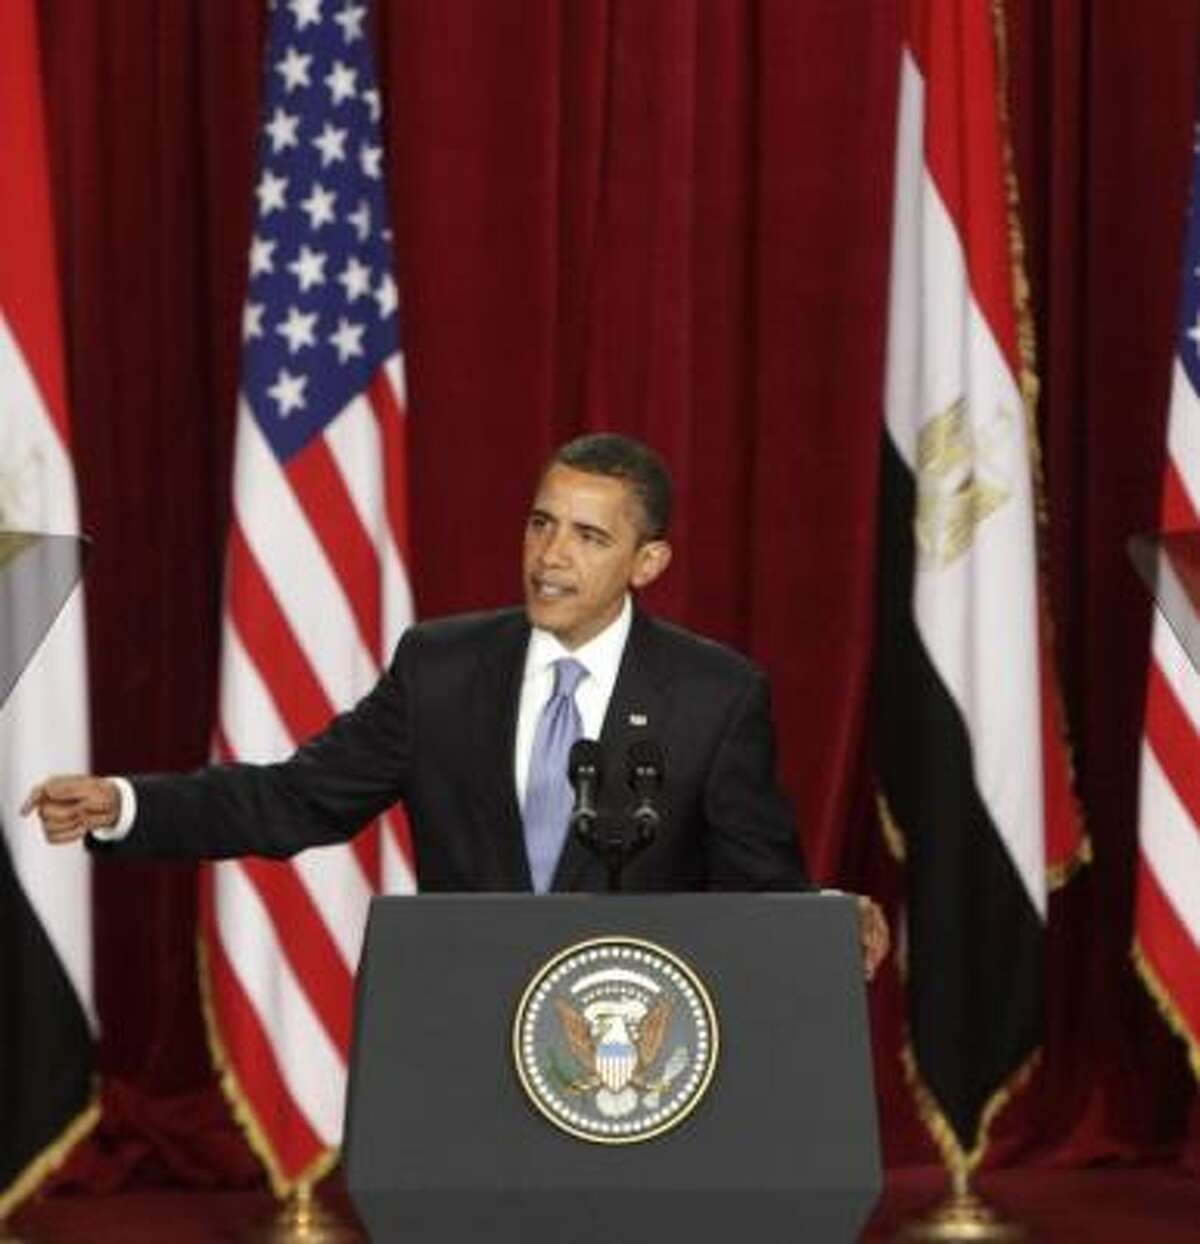 President Barack Obama addresses an audience at the Cairo University in June. His speech regarding U.S.-Muslim relations was well received.